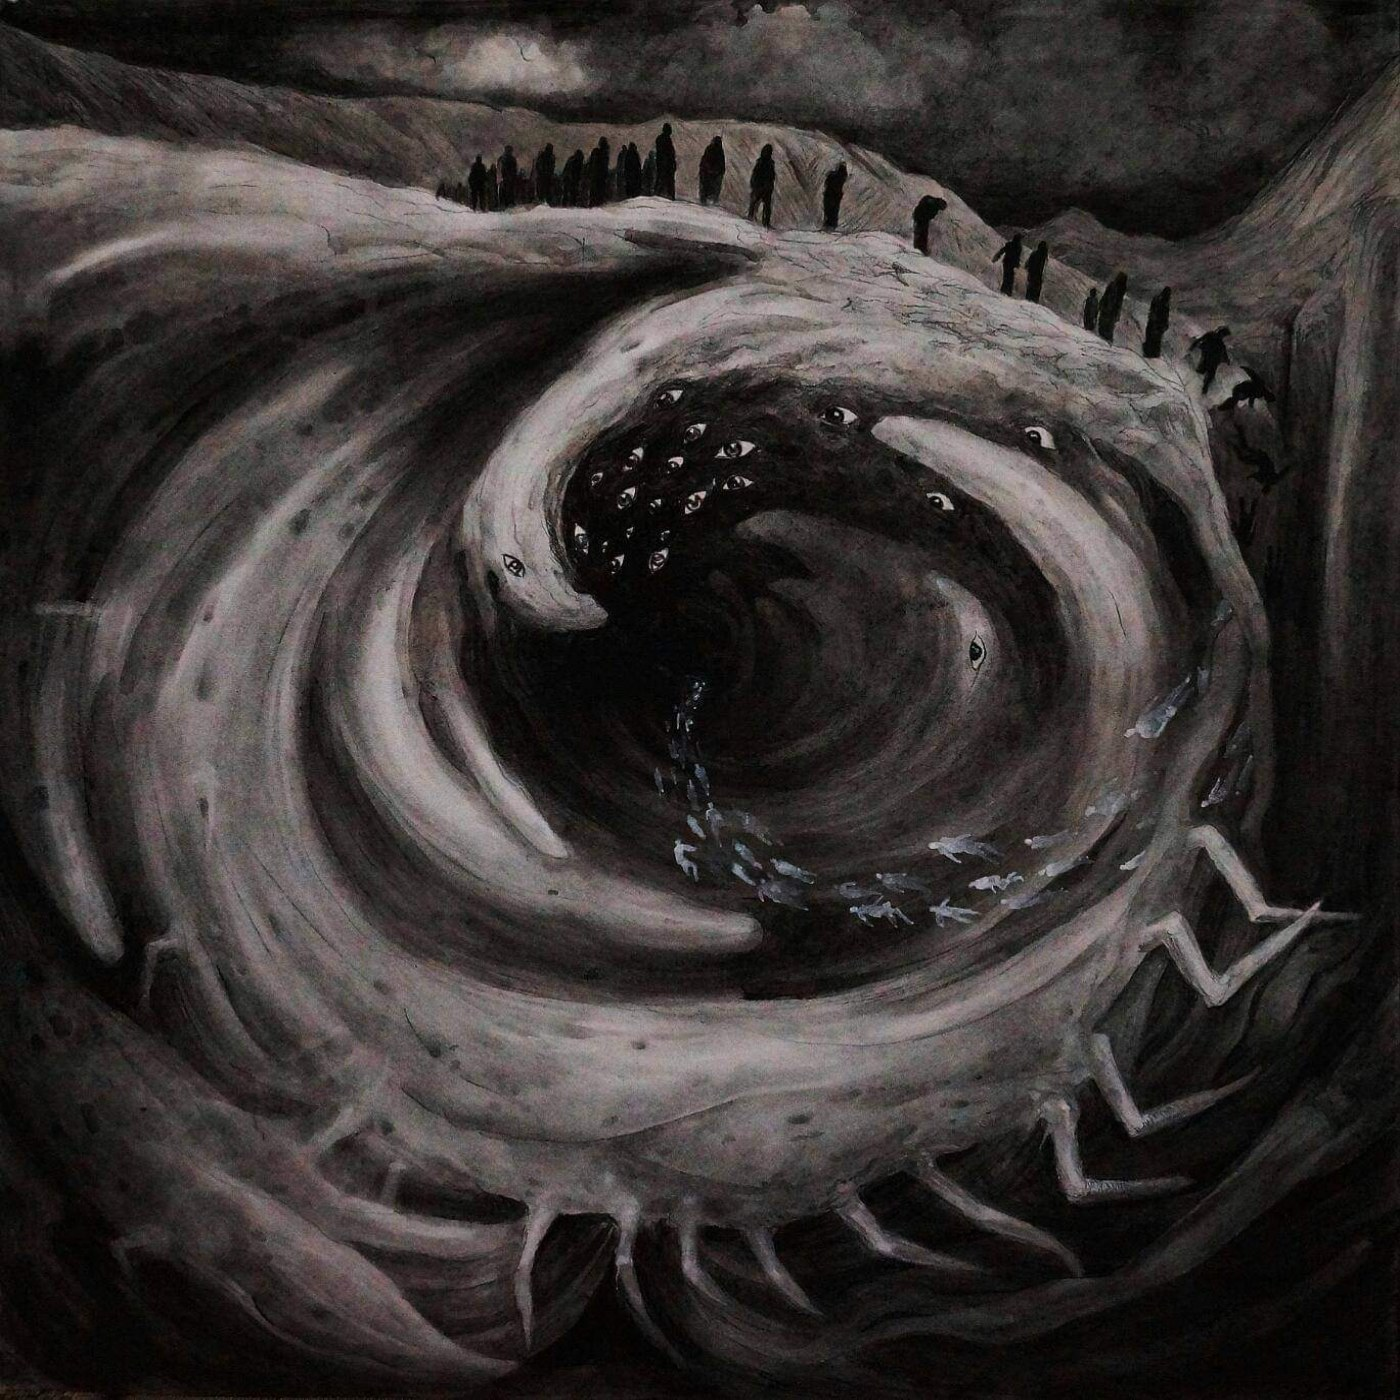 Review for Burial Hordes - Θανατος αιωνιος (The Termination Thesis)